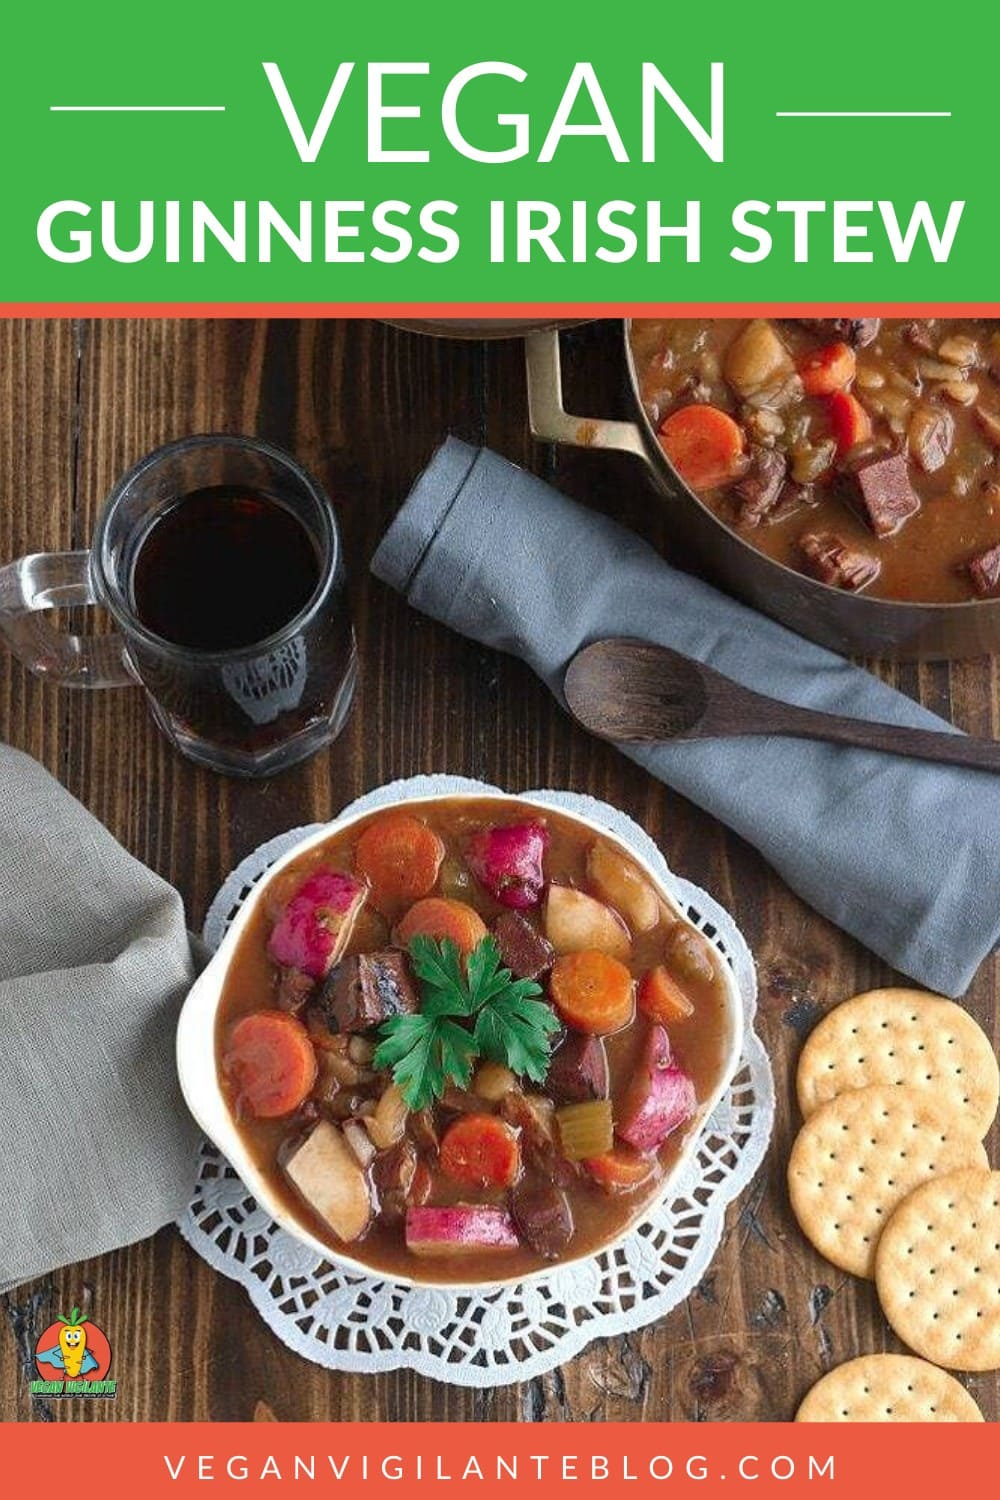 Vegan Guinness Irish Stew Vegan Vigilante